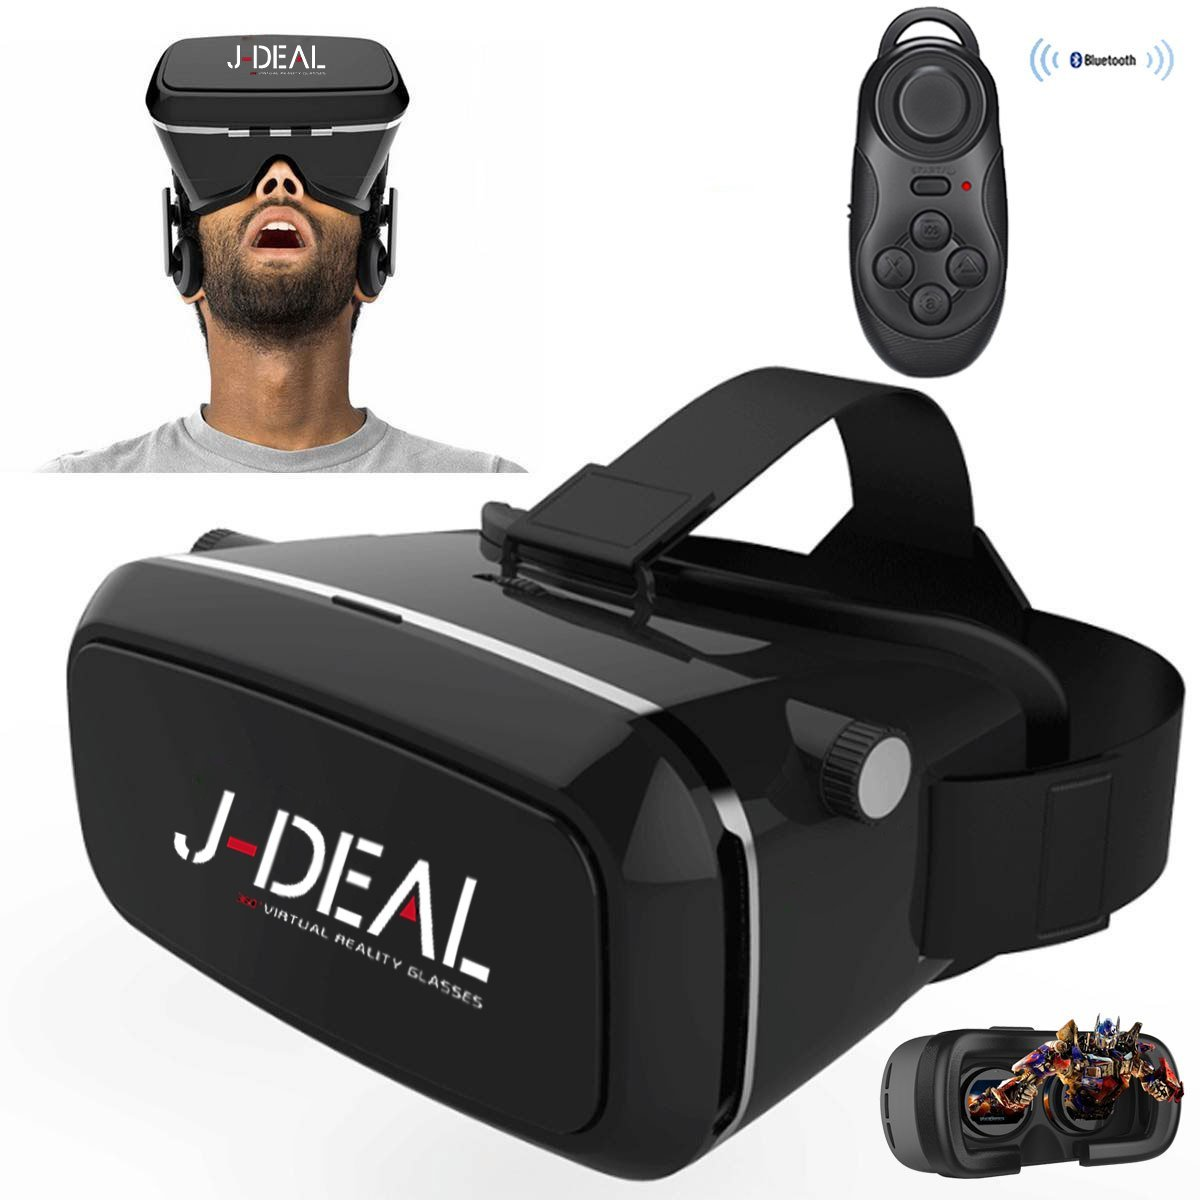 J-DEAL 360° Viewing Immersive Virtual Reality 3D VR Glasses Google Cardboard 3D Video Games Glasses VR Headset Box Compatible with 3.5-6.0 inches Android & Apple Smartphones + Controller